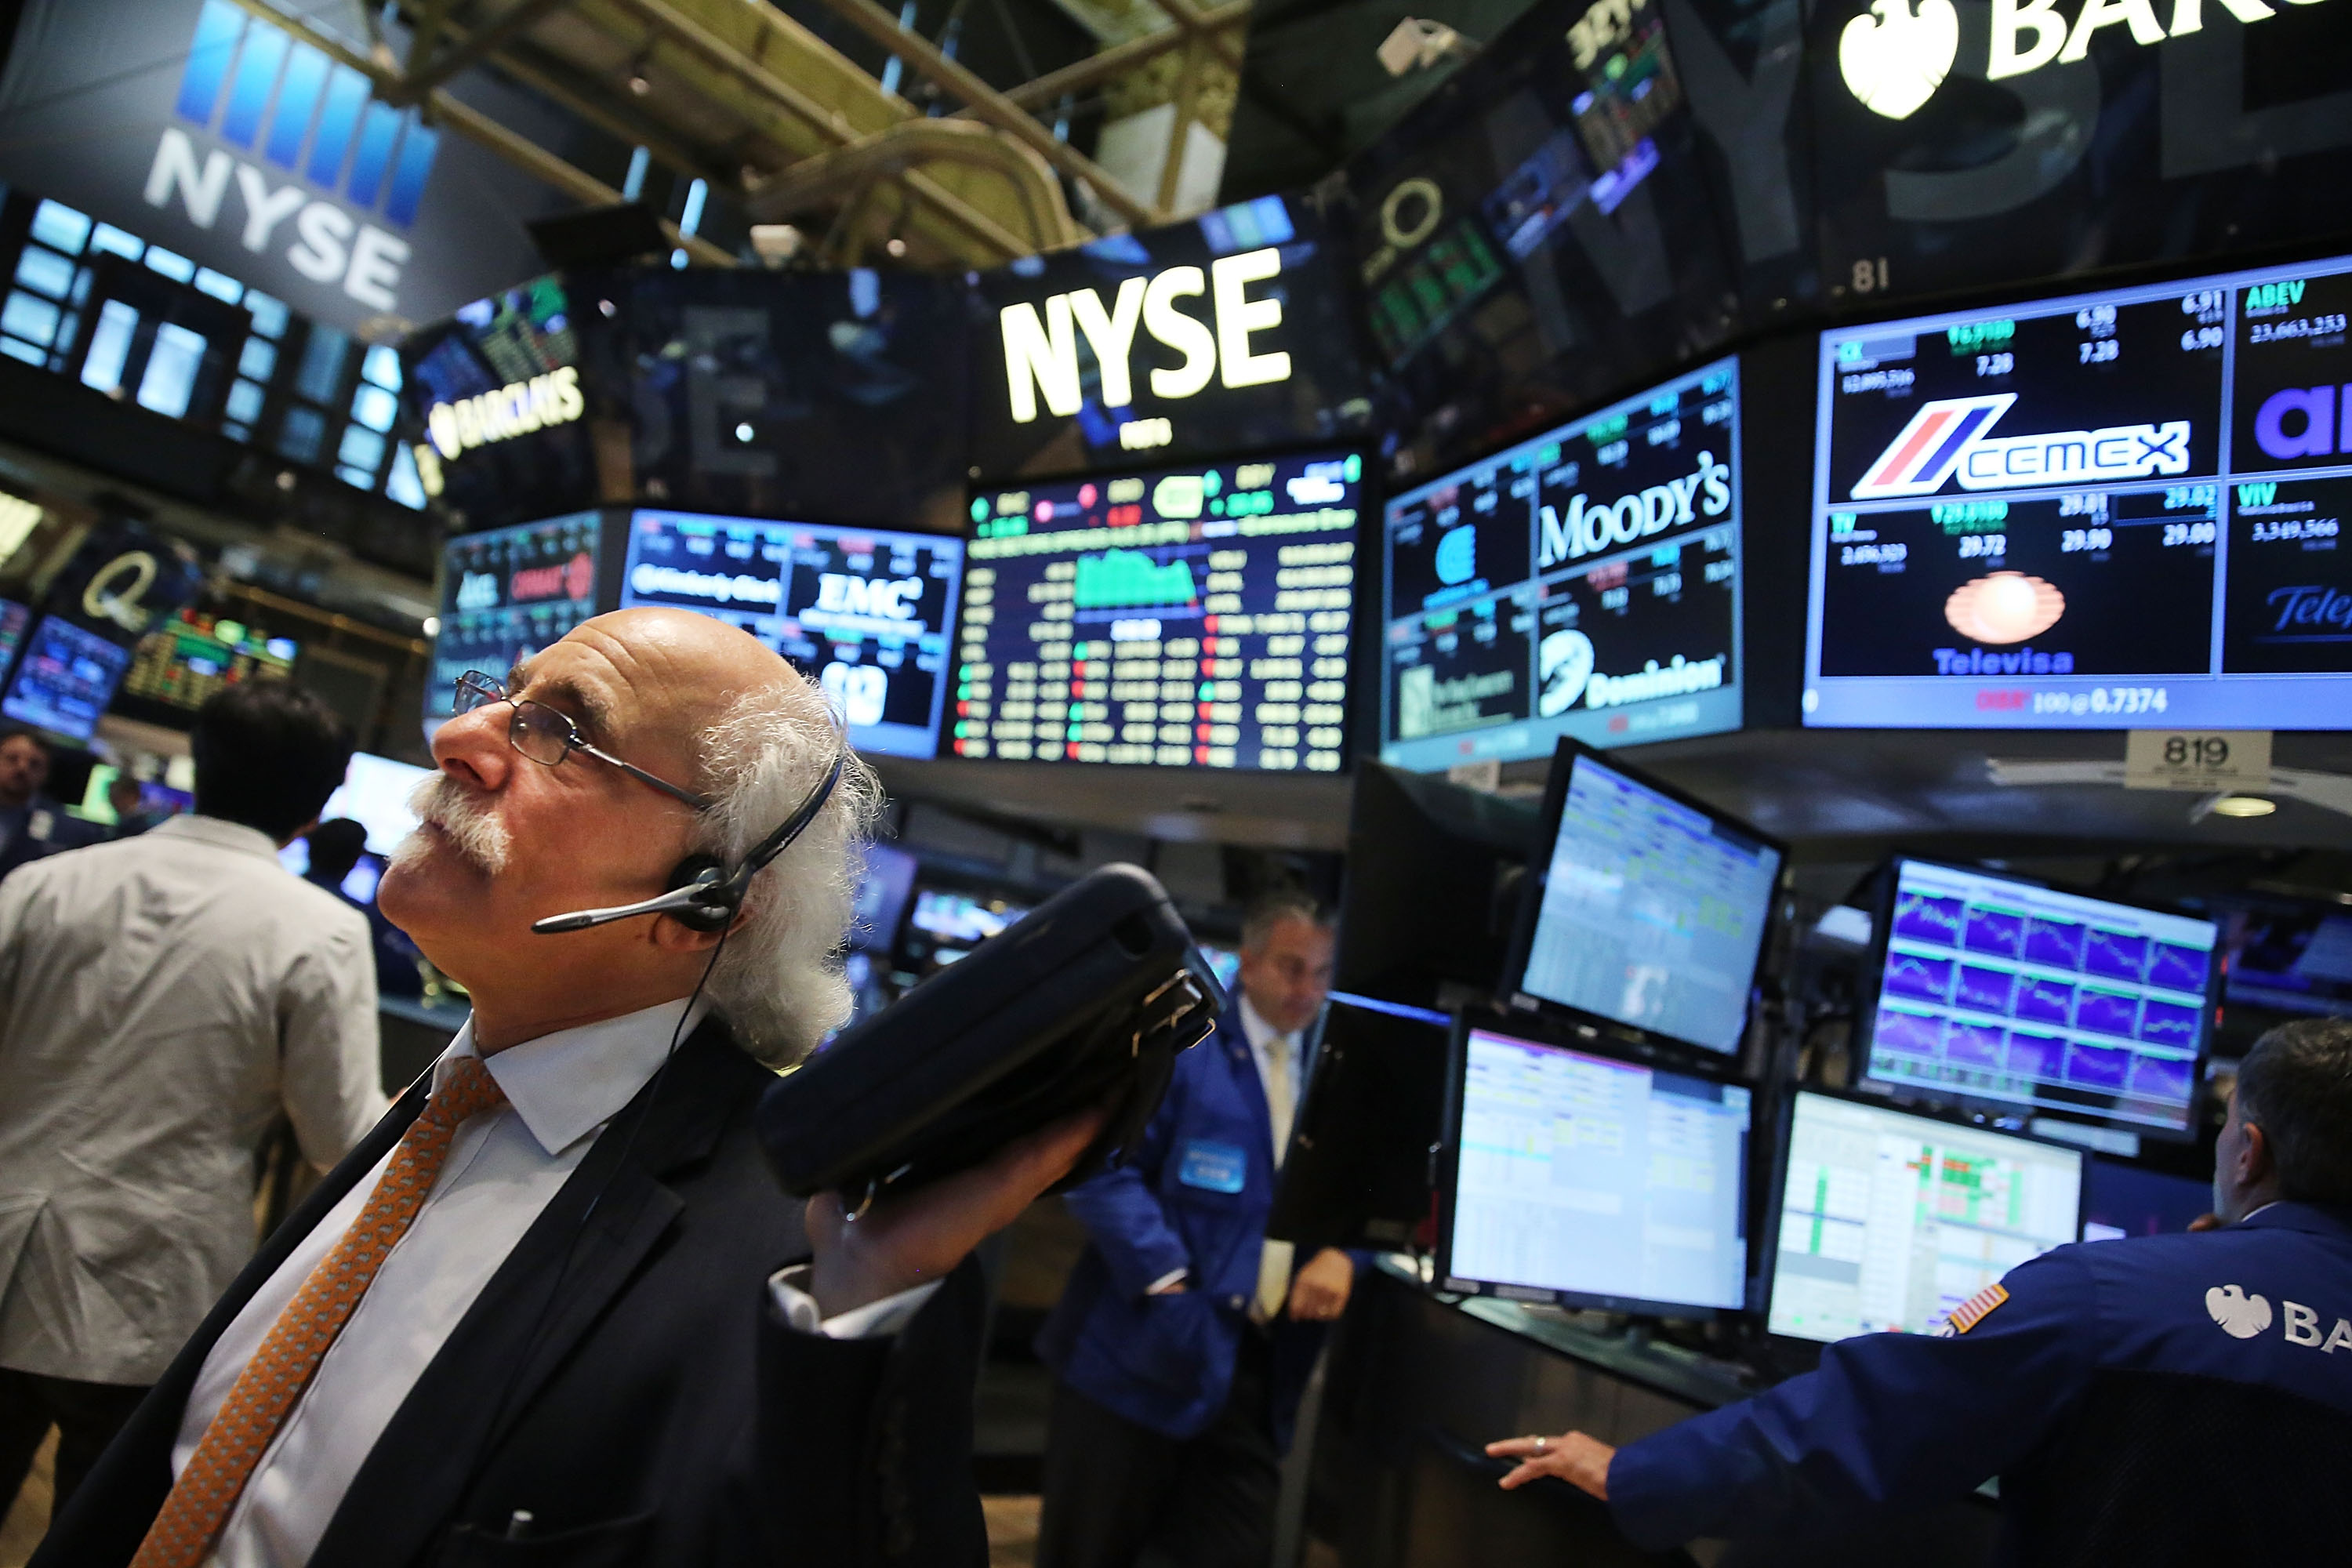 Stocks Continue Downward Slide On Heels Of Yesterday's Extreme Fall